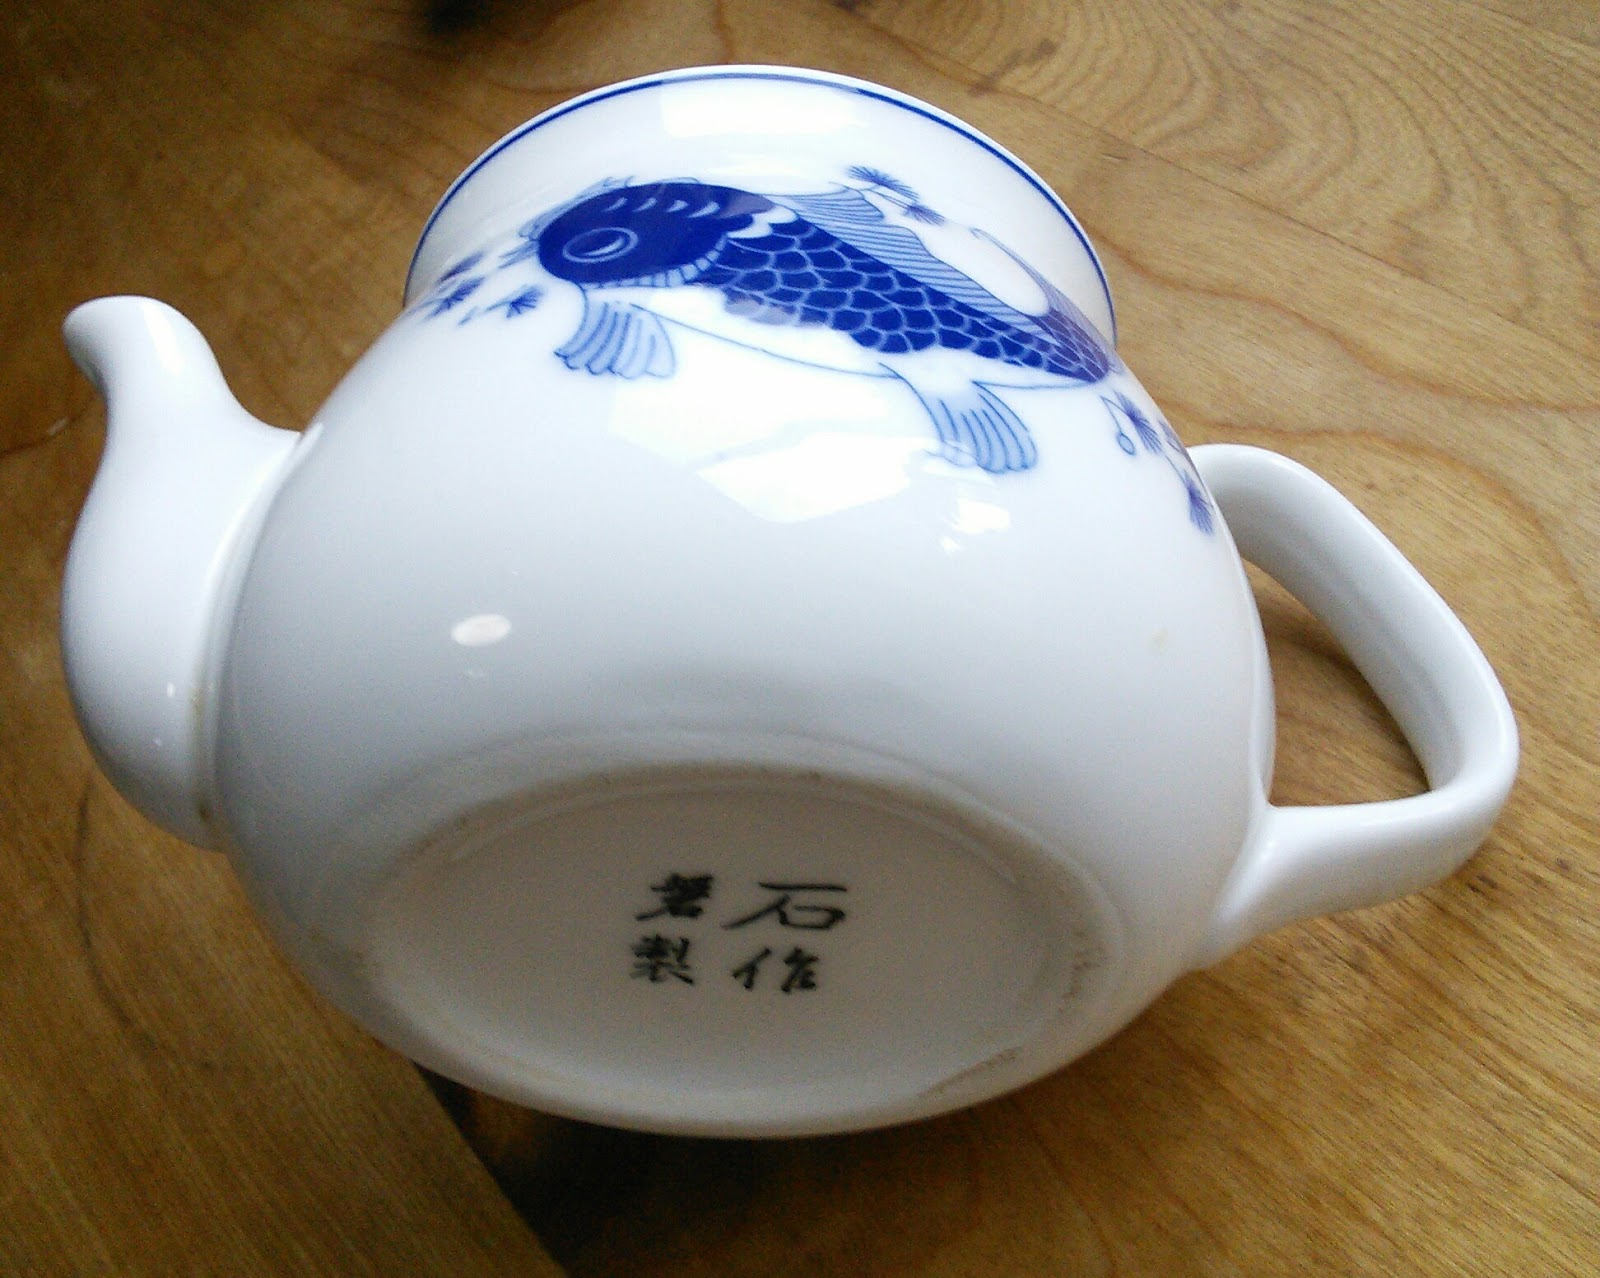 Field And Fen Teapots Pitchers Accidental Collections Sakura Moth Hanger 160 Gr Here Are The Markings On Underside Of One Fish Probably Says Dishwasher Safei Also Bought Two Cups With Design